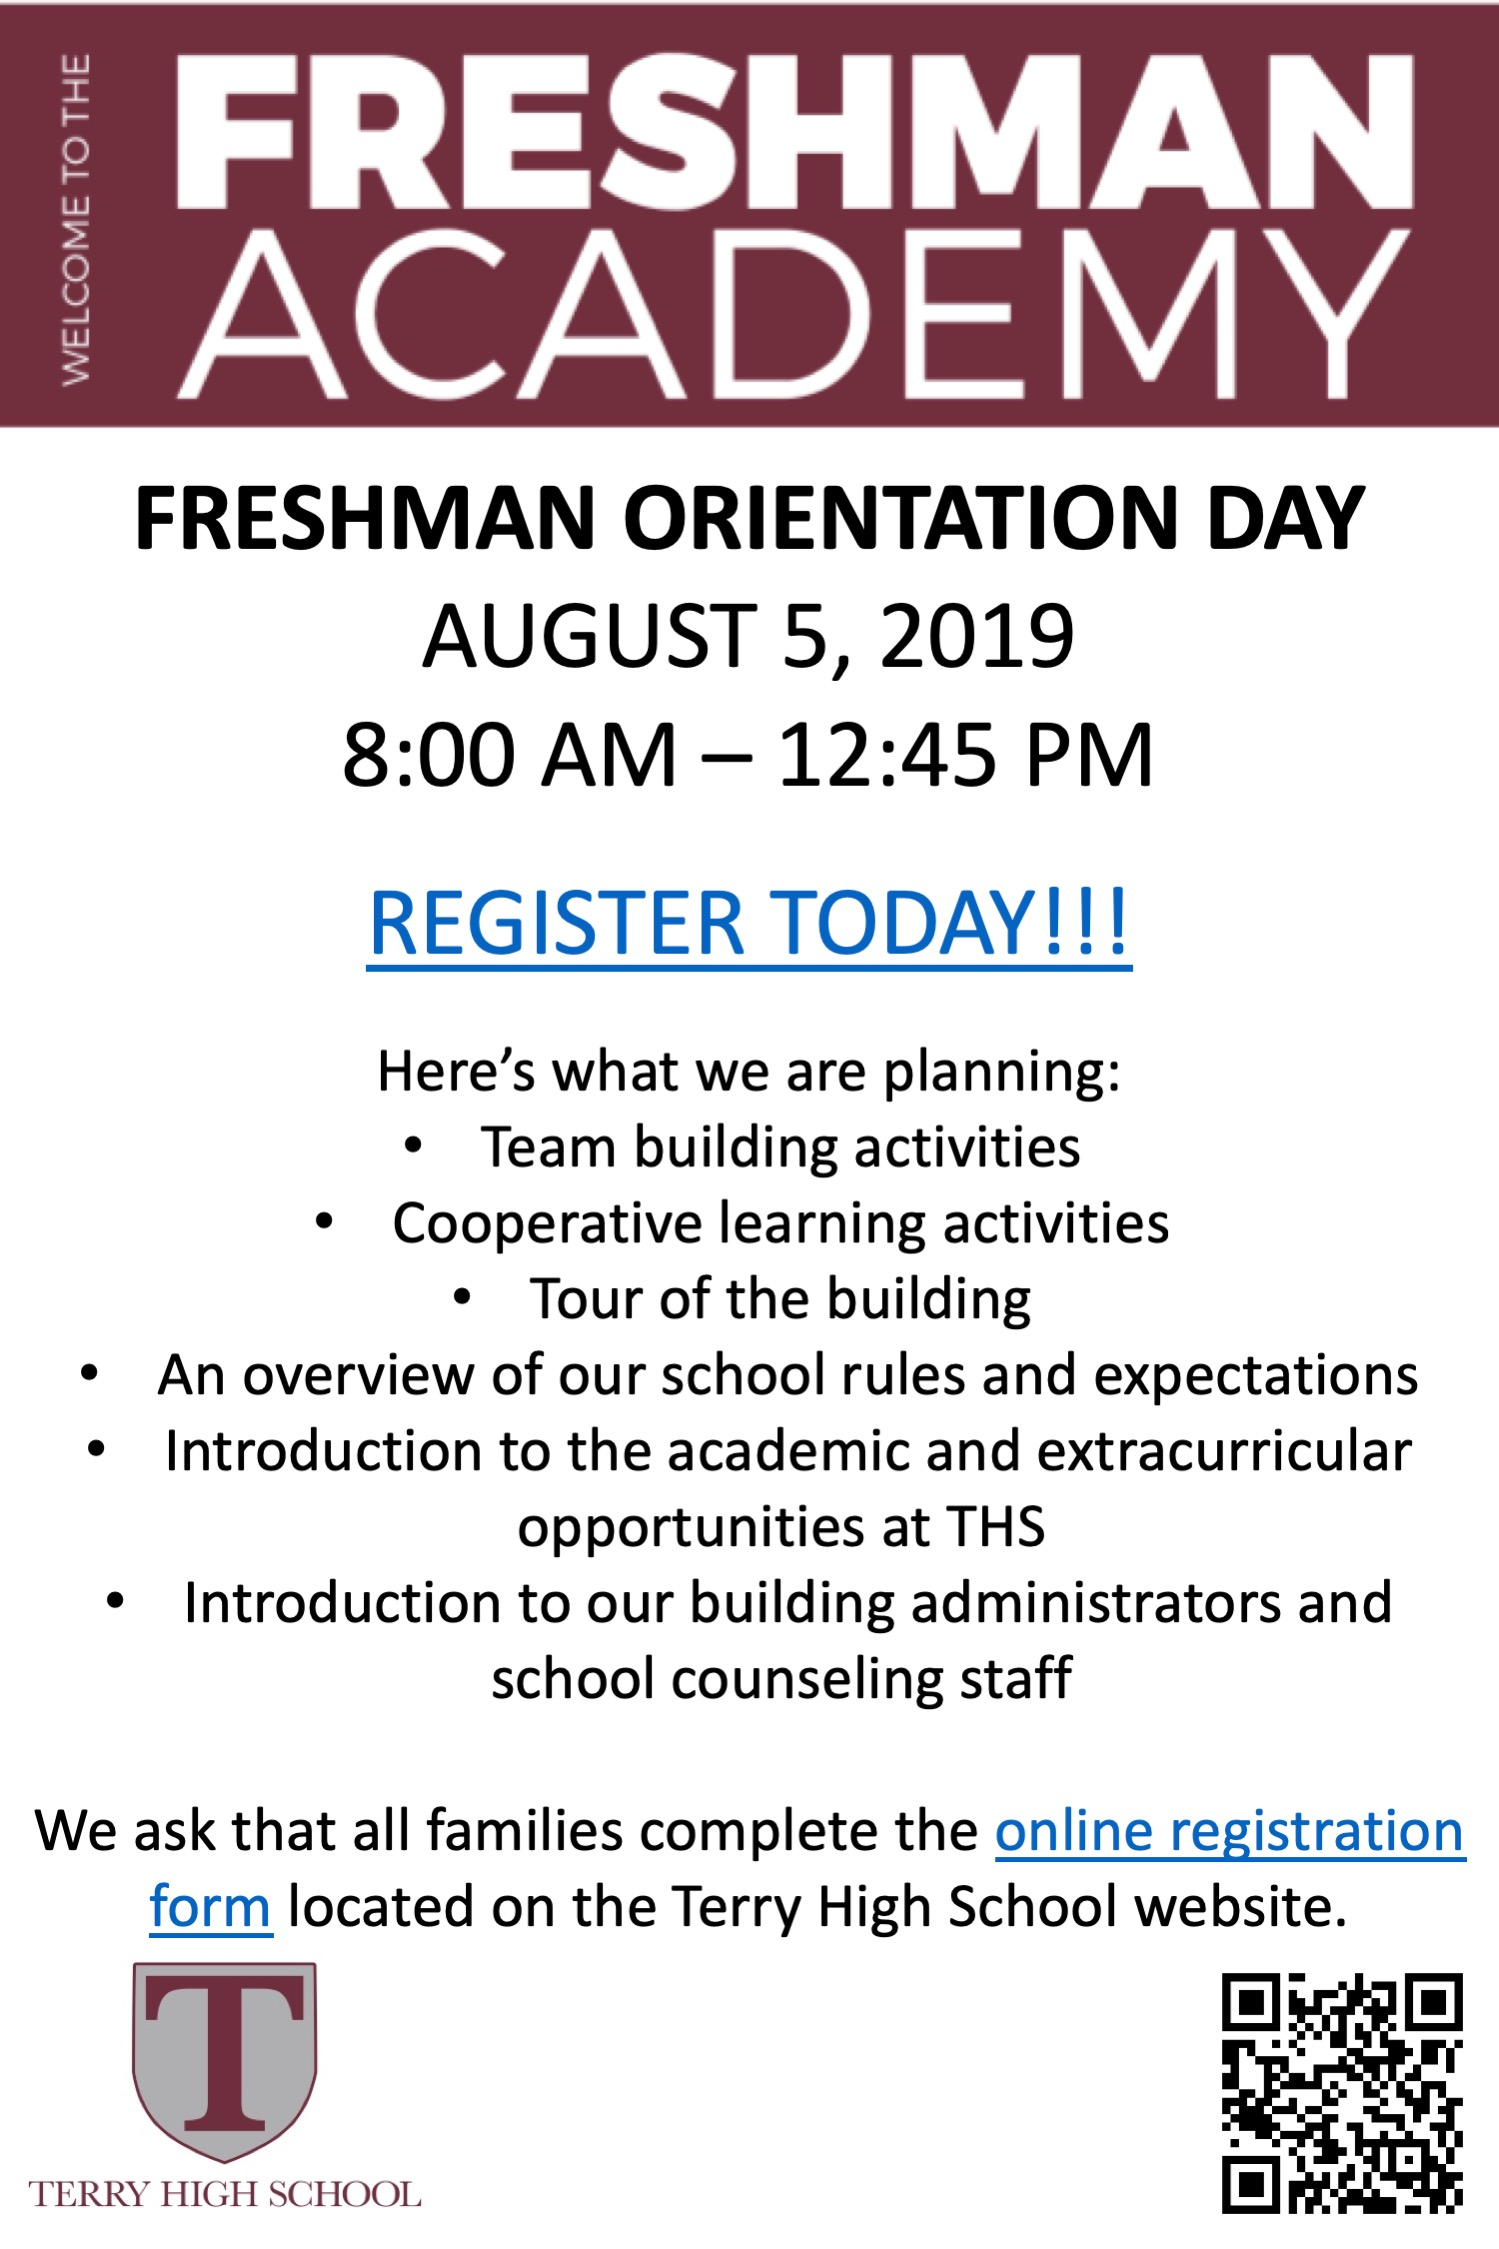 Freshman Orientation Day Flyer